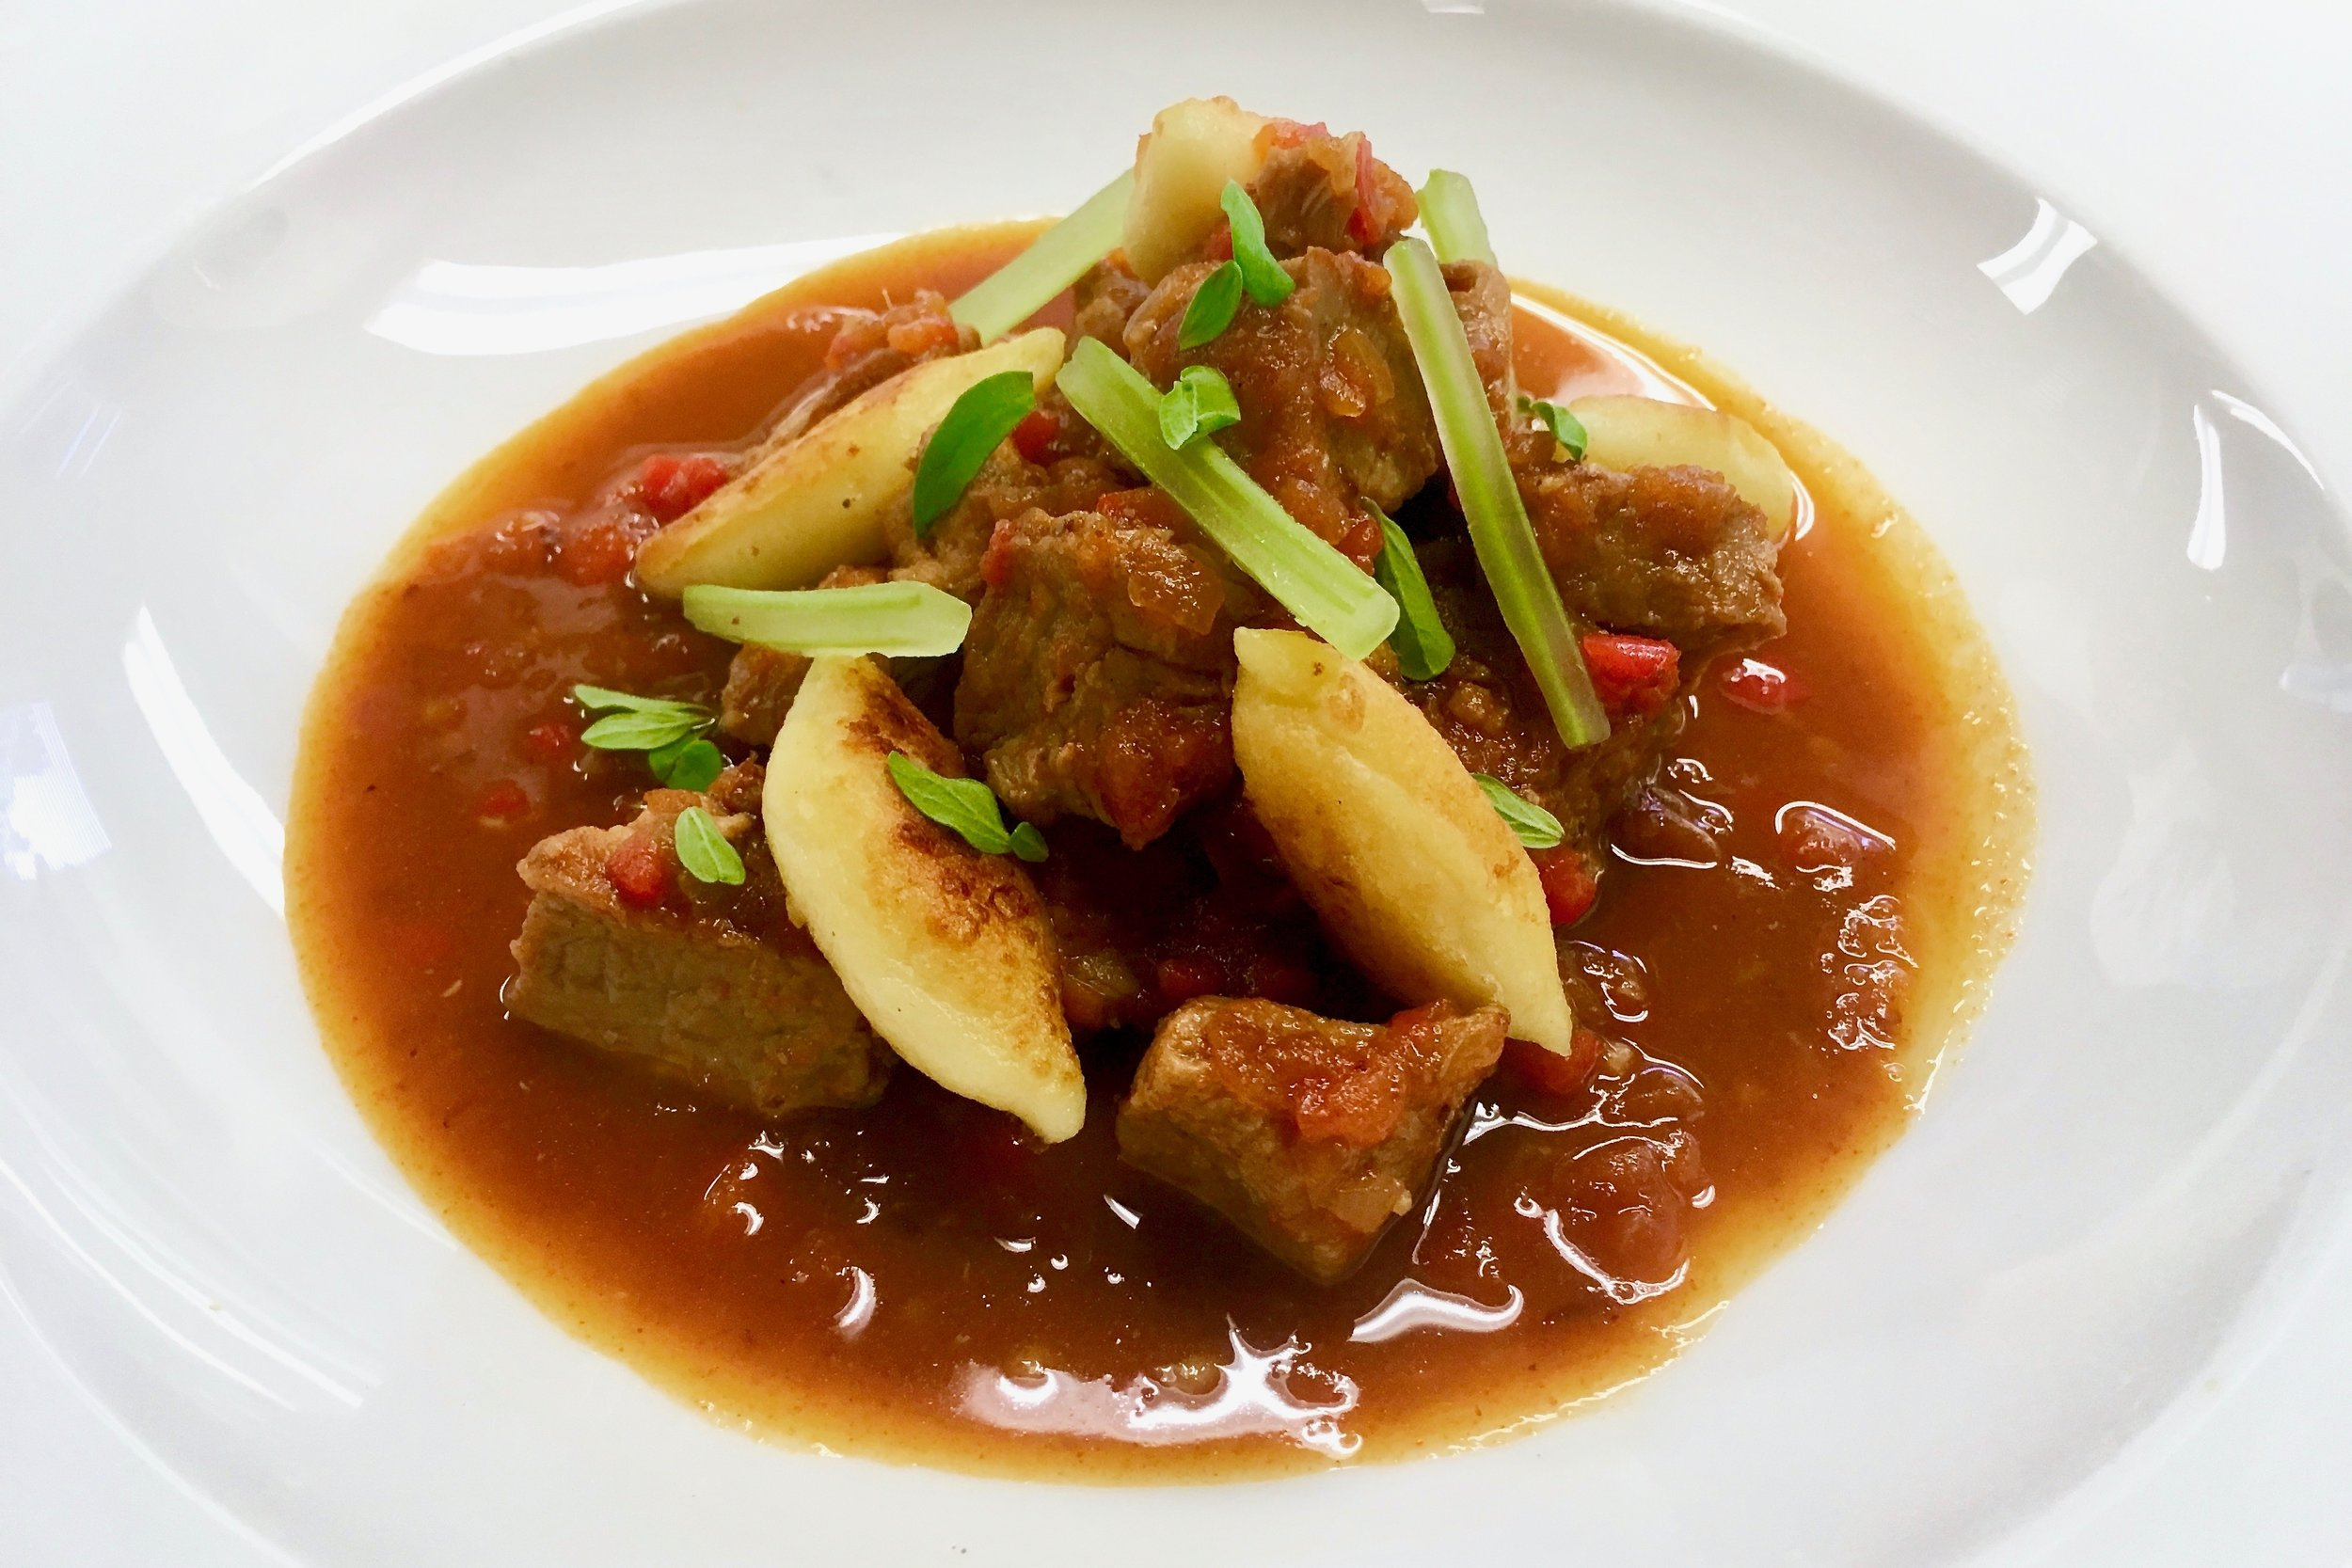 Veal goulash with Hungarian gnocchi